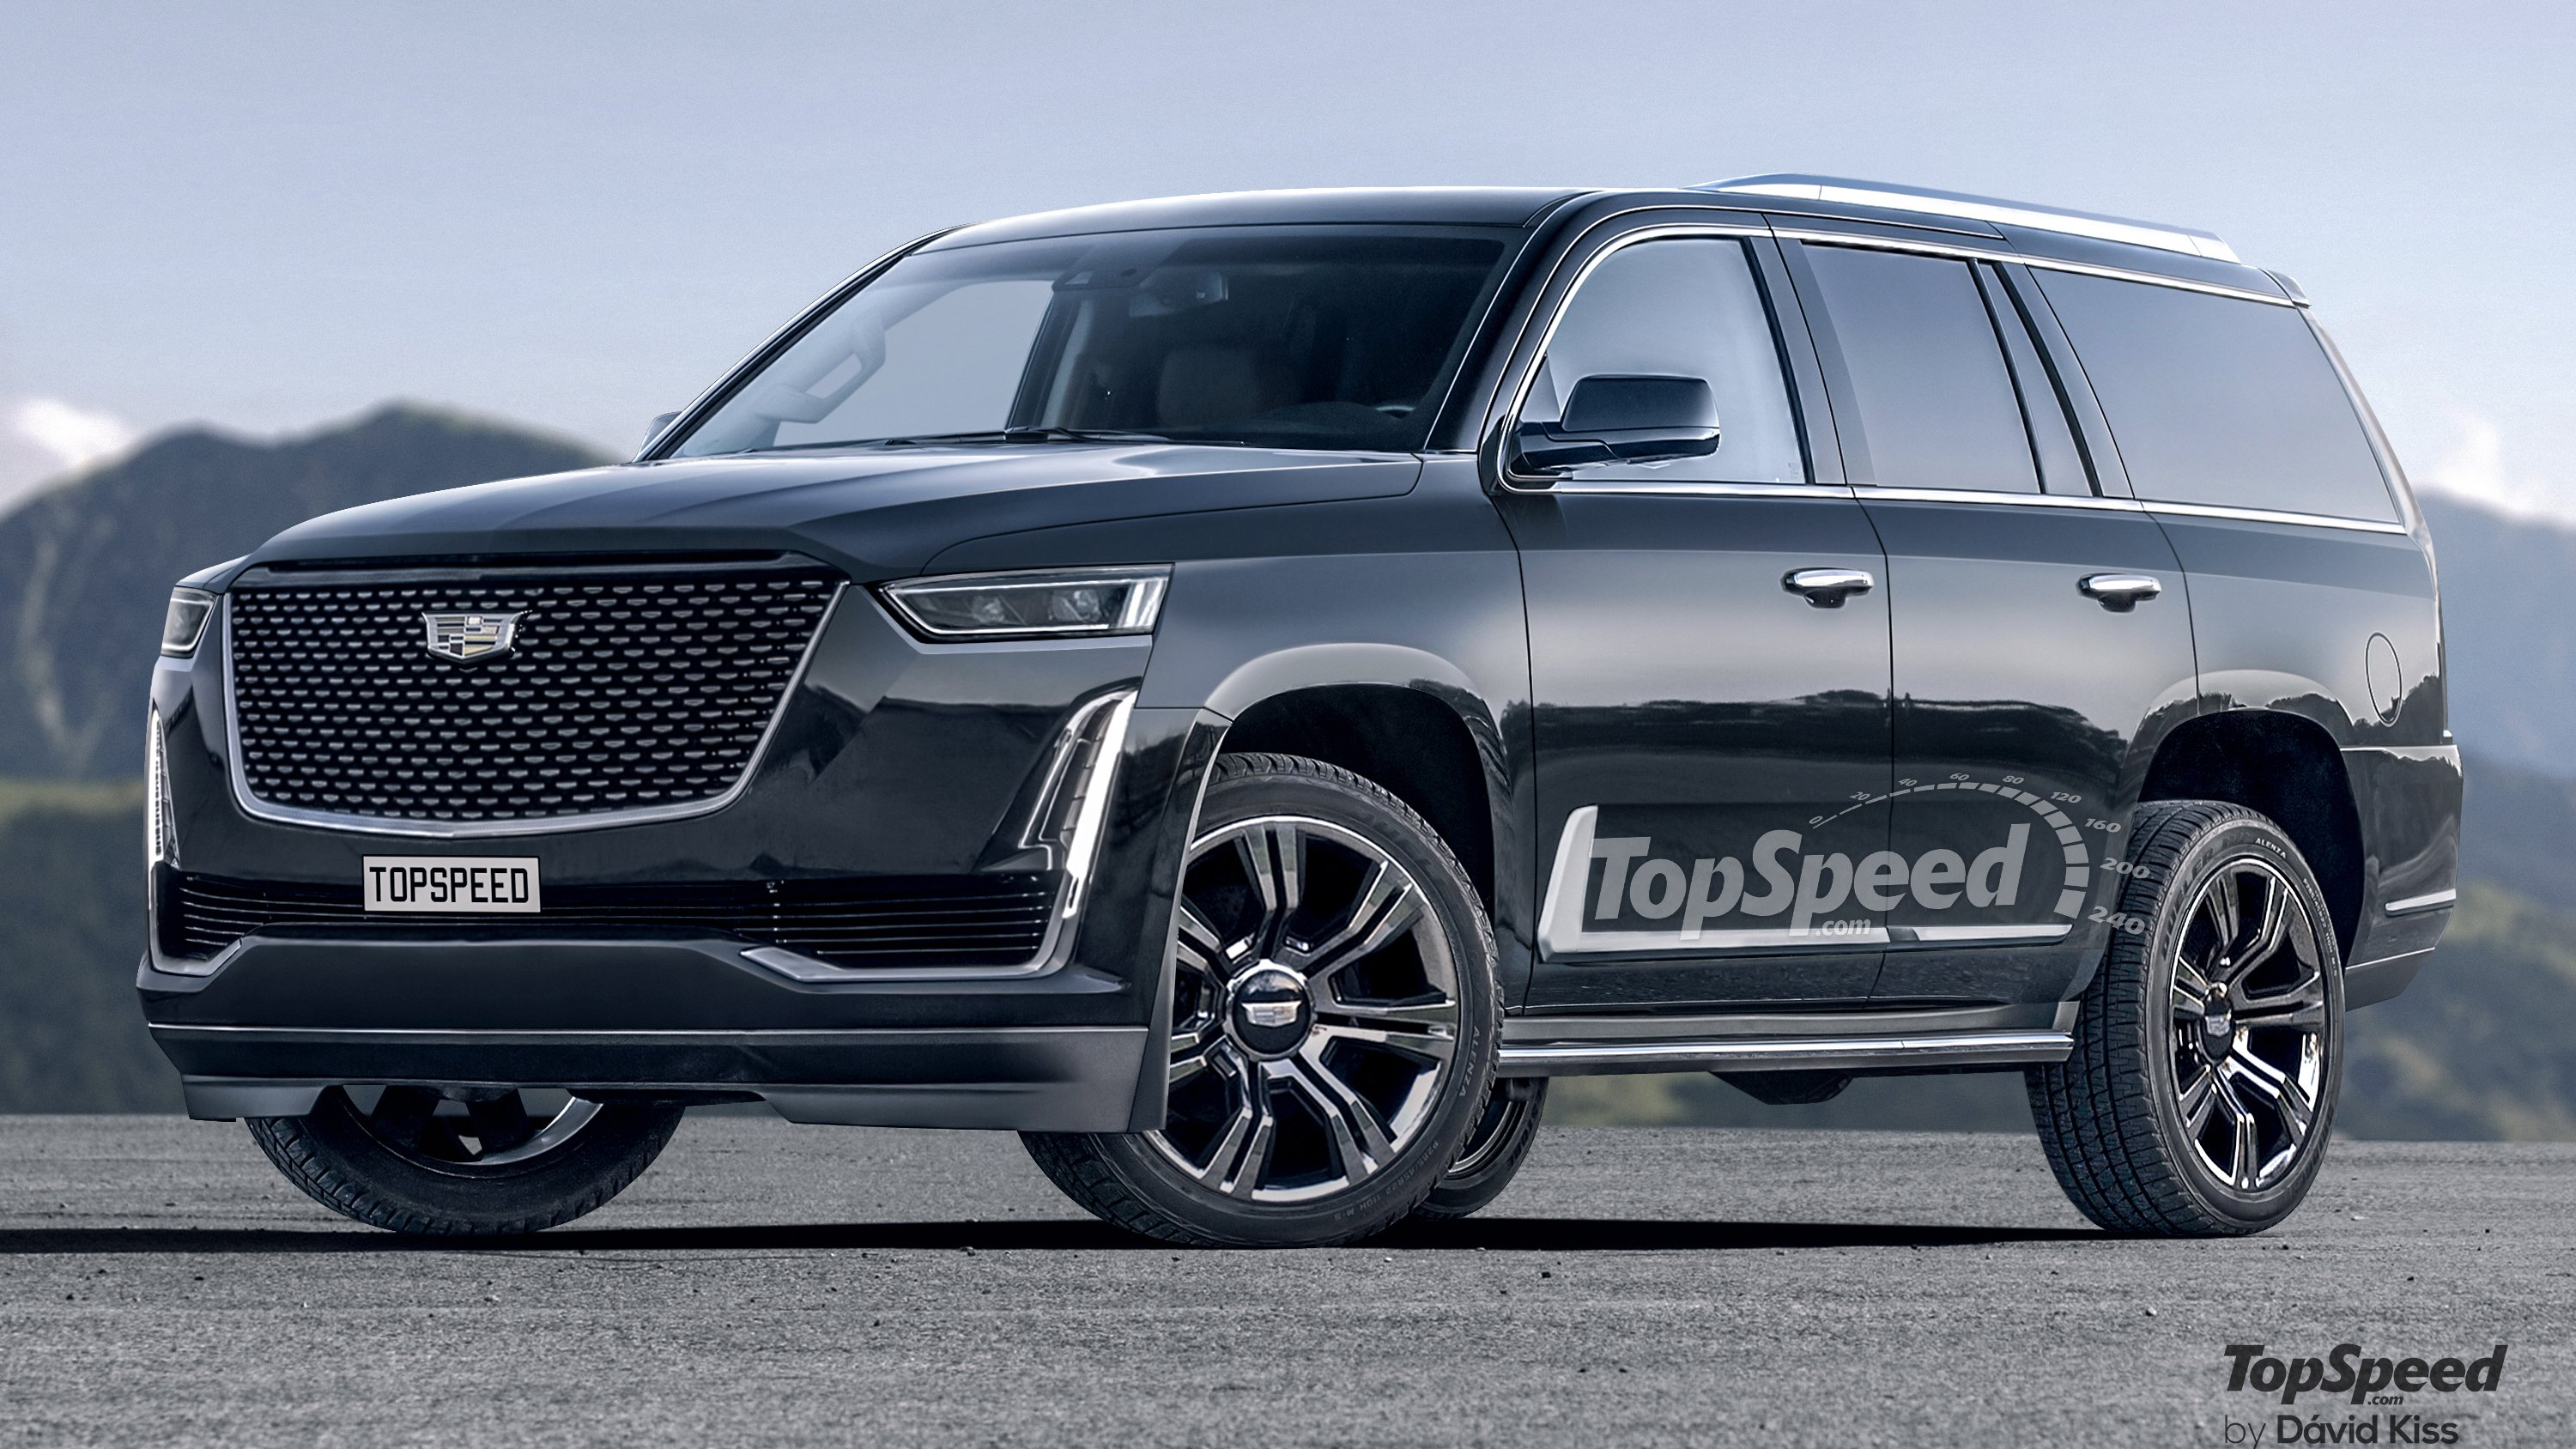 78 The 2020 Cadillac Escalade Luxury Suv Prices